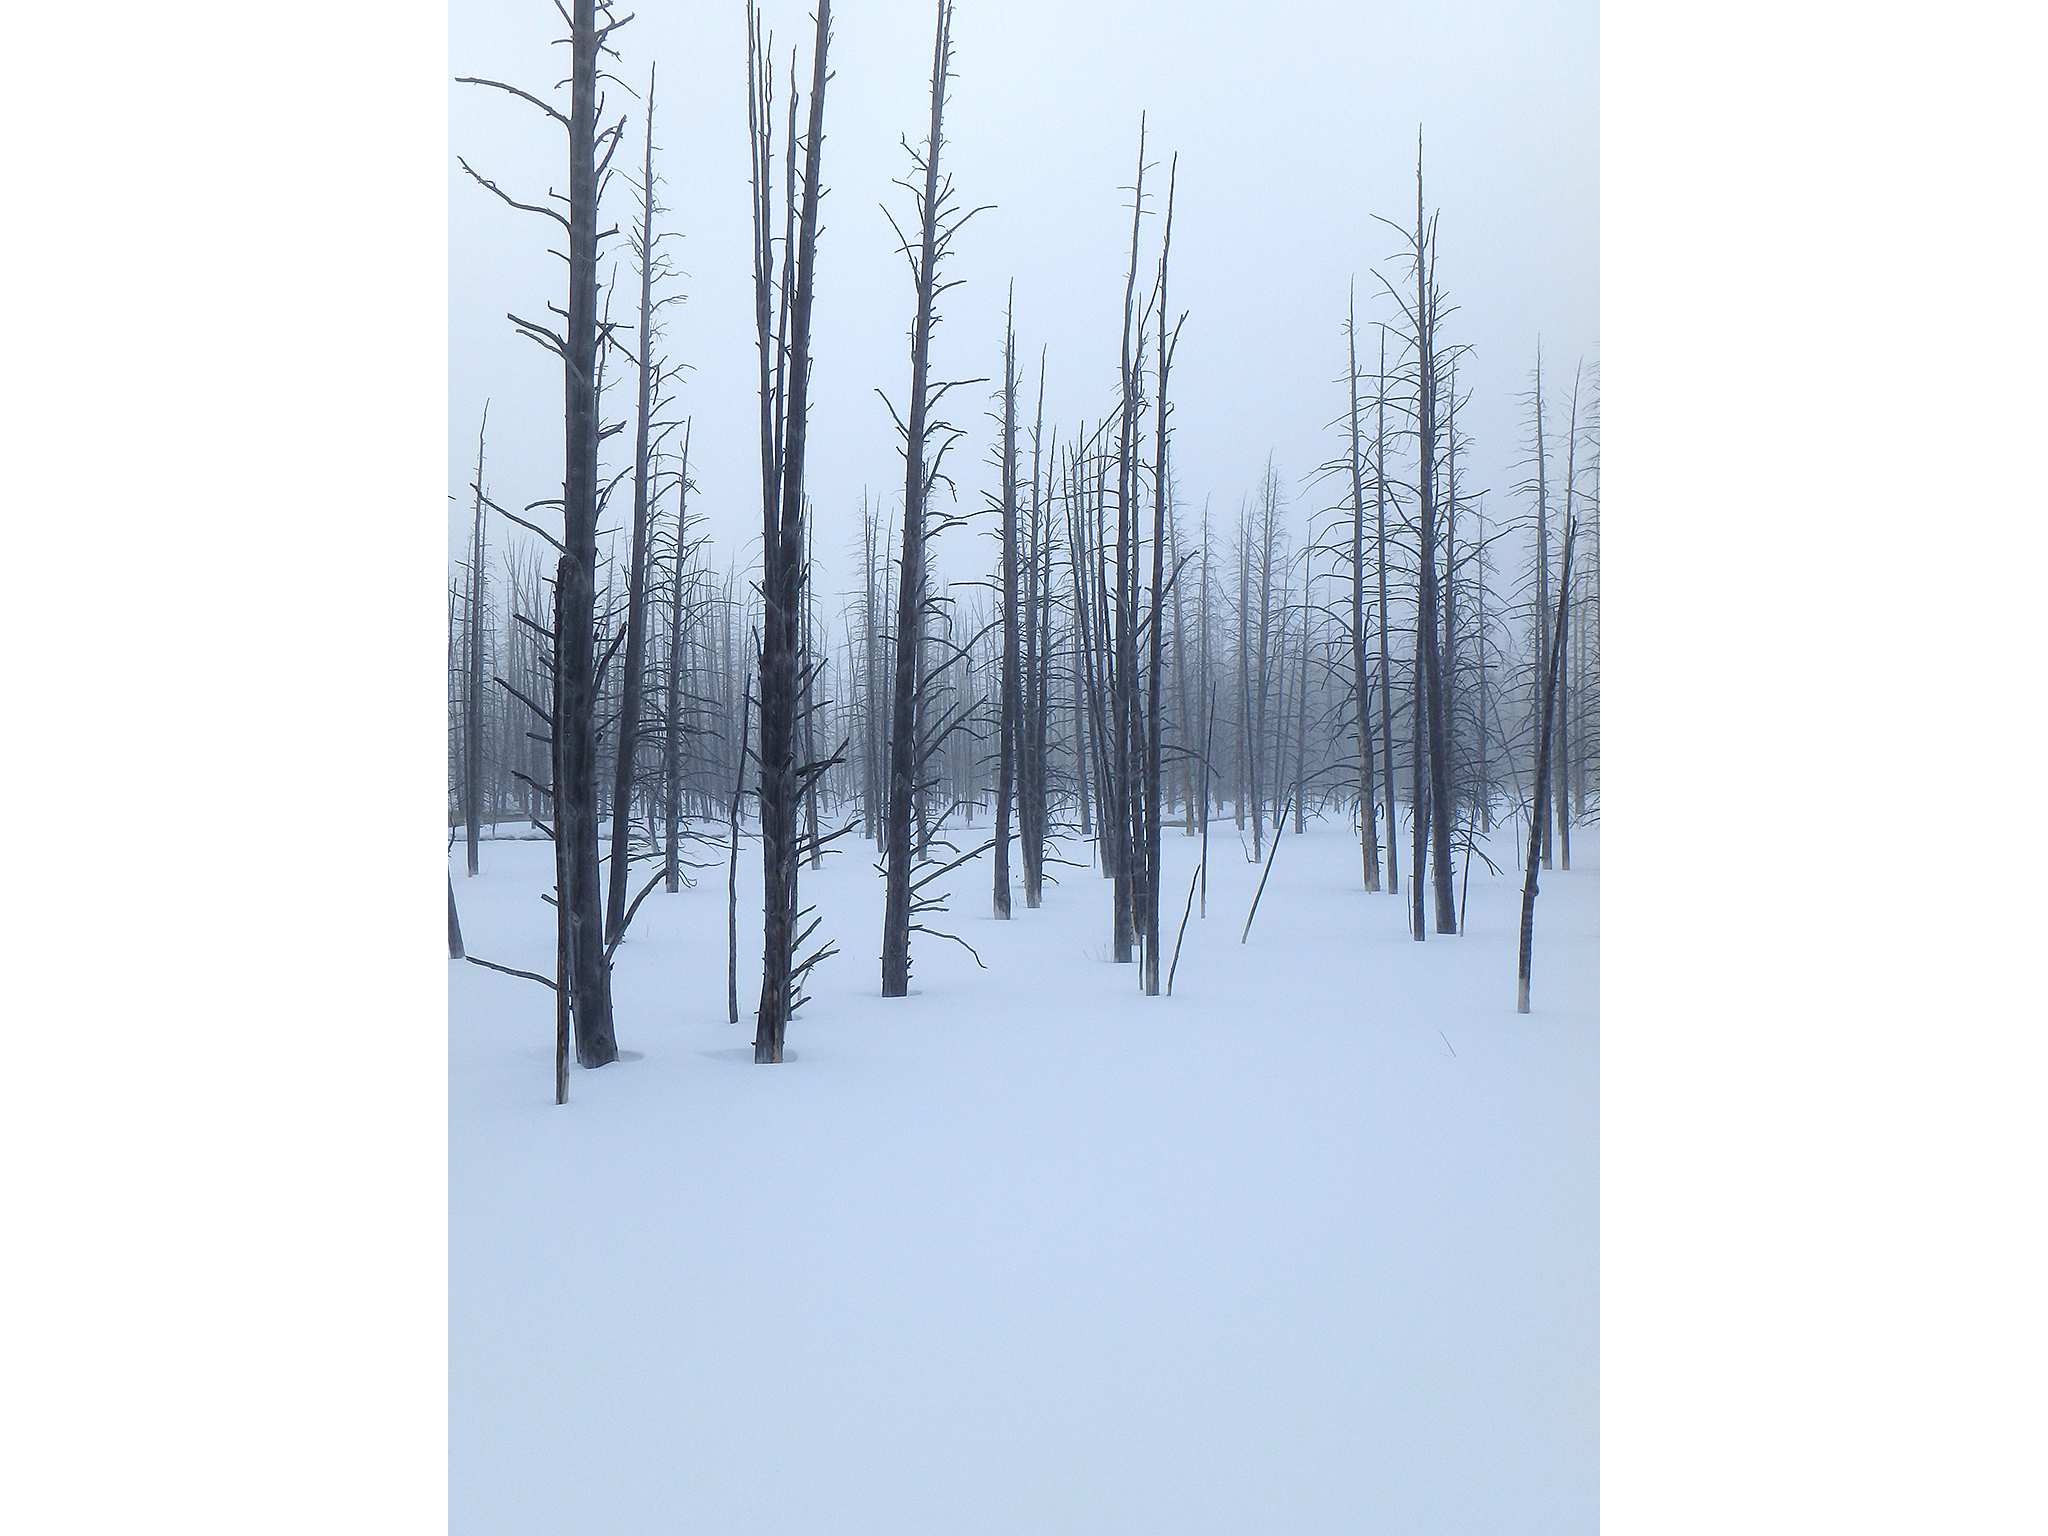 Photograph of bare trees in snow and fog shot in Yellowstone wintertime